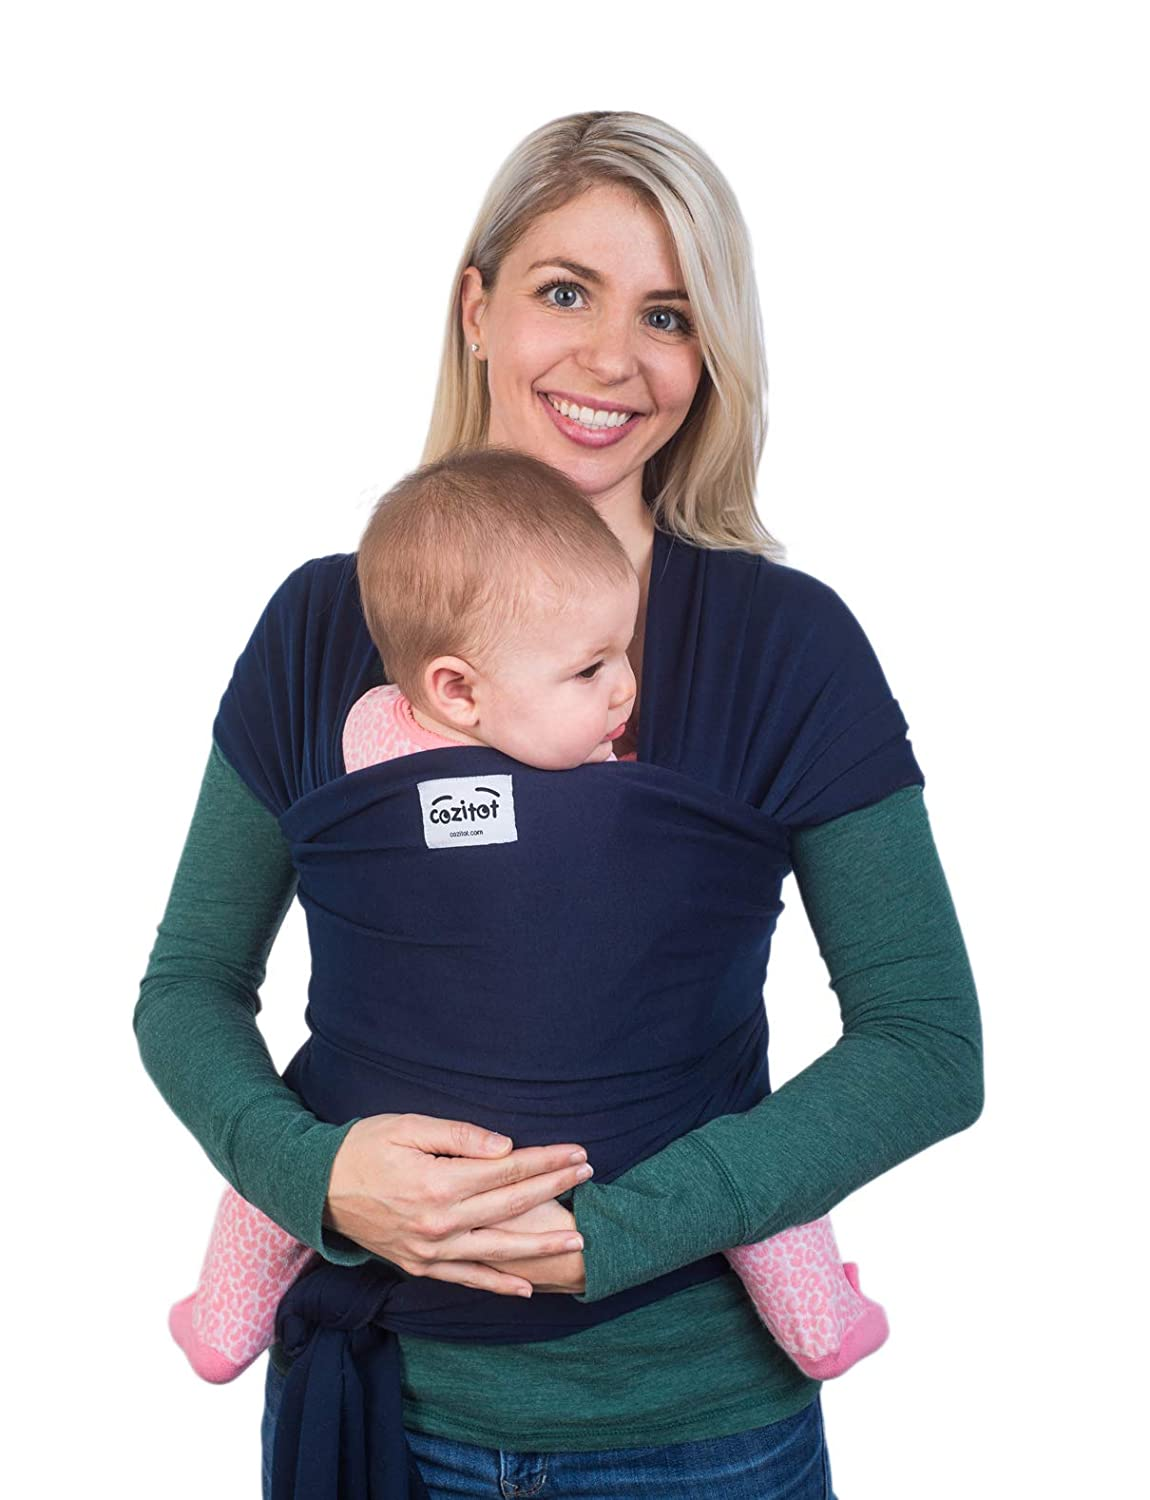 Navy Blue Babycarrier Sling Wrap by Cozitot |Stretchy, All Cloth Baby Wrap | Small to Plus Size Baby Sling | Nursing Cover Wrap | Best Baby Shower Gift